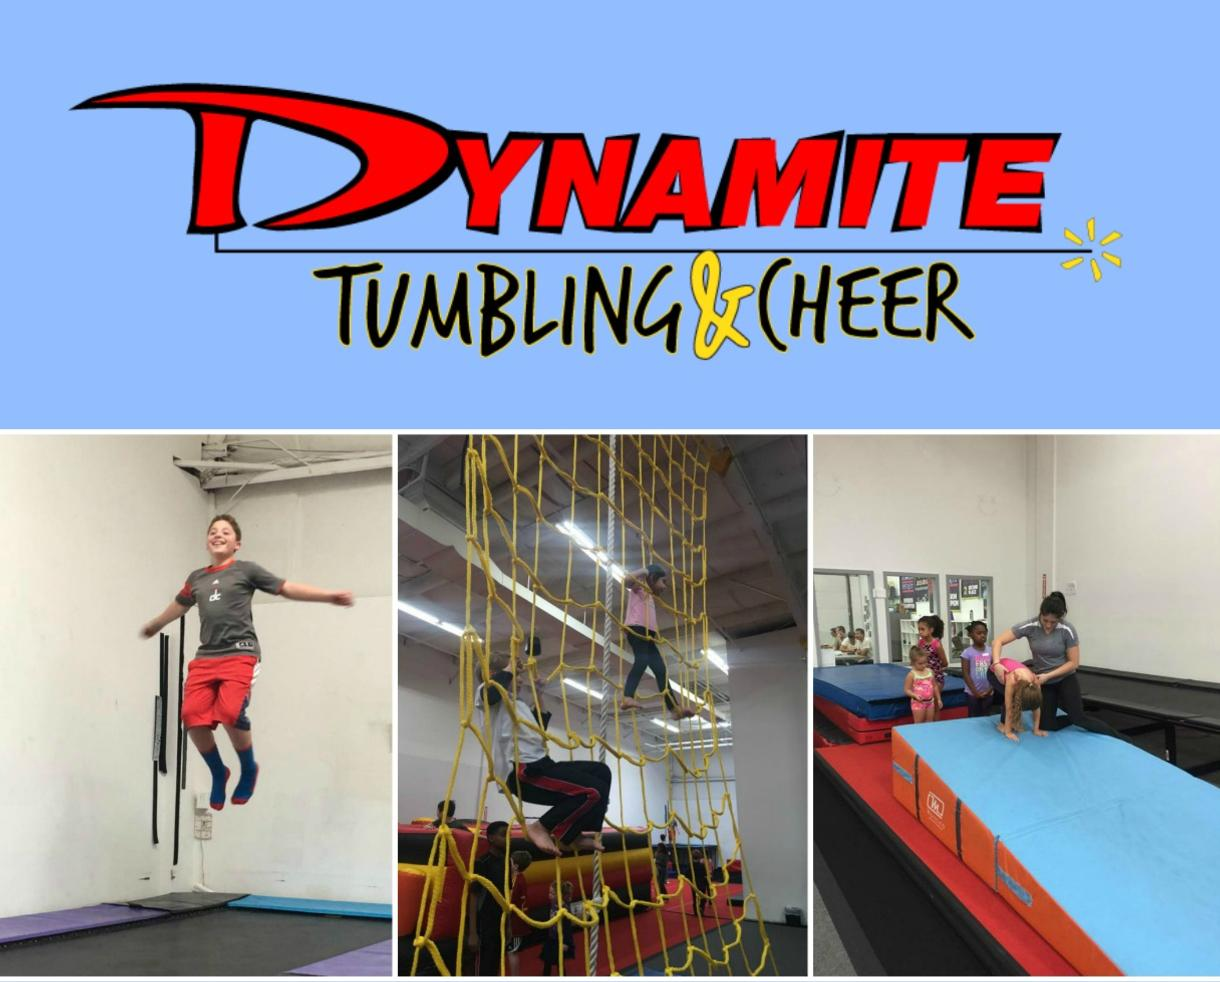 $199+ for Dynamite Tumbling & Cheer Camp for Ages 3-17 in Gaithersburg (Up to 34% Off)